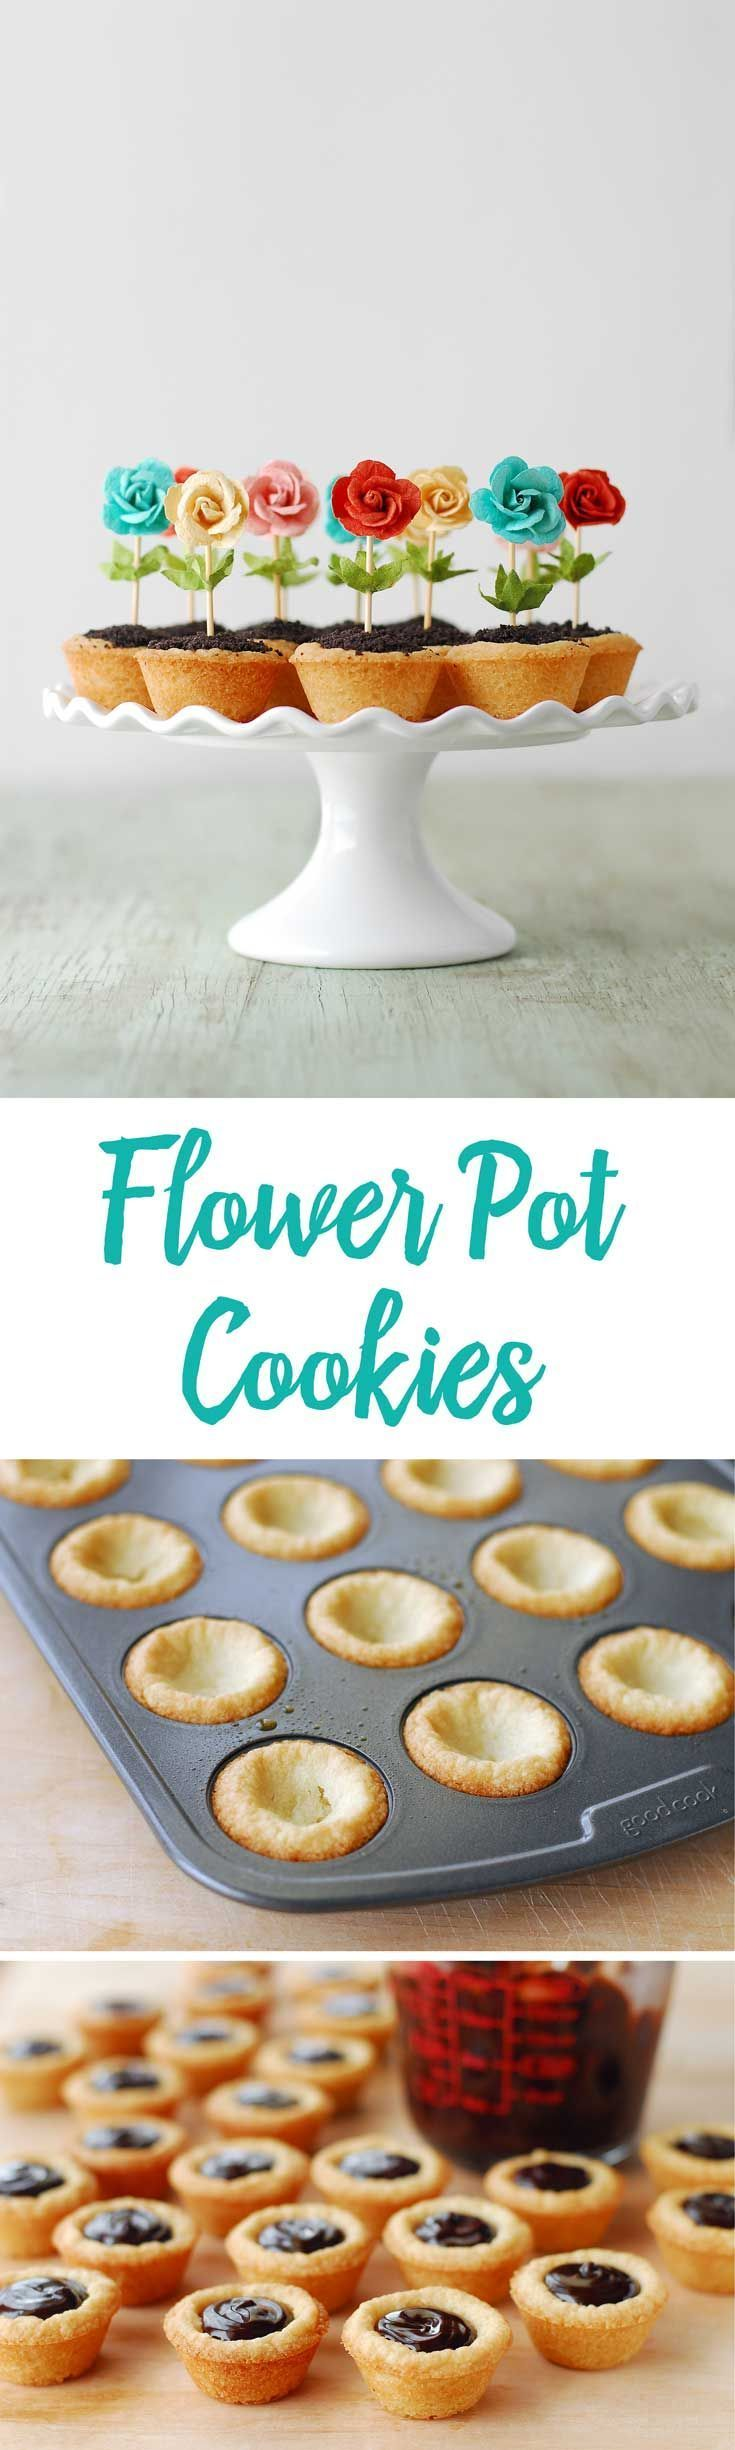 Pinterest & These Flower Pot Cookies are perfect for spring! The bright colors ...